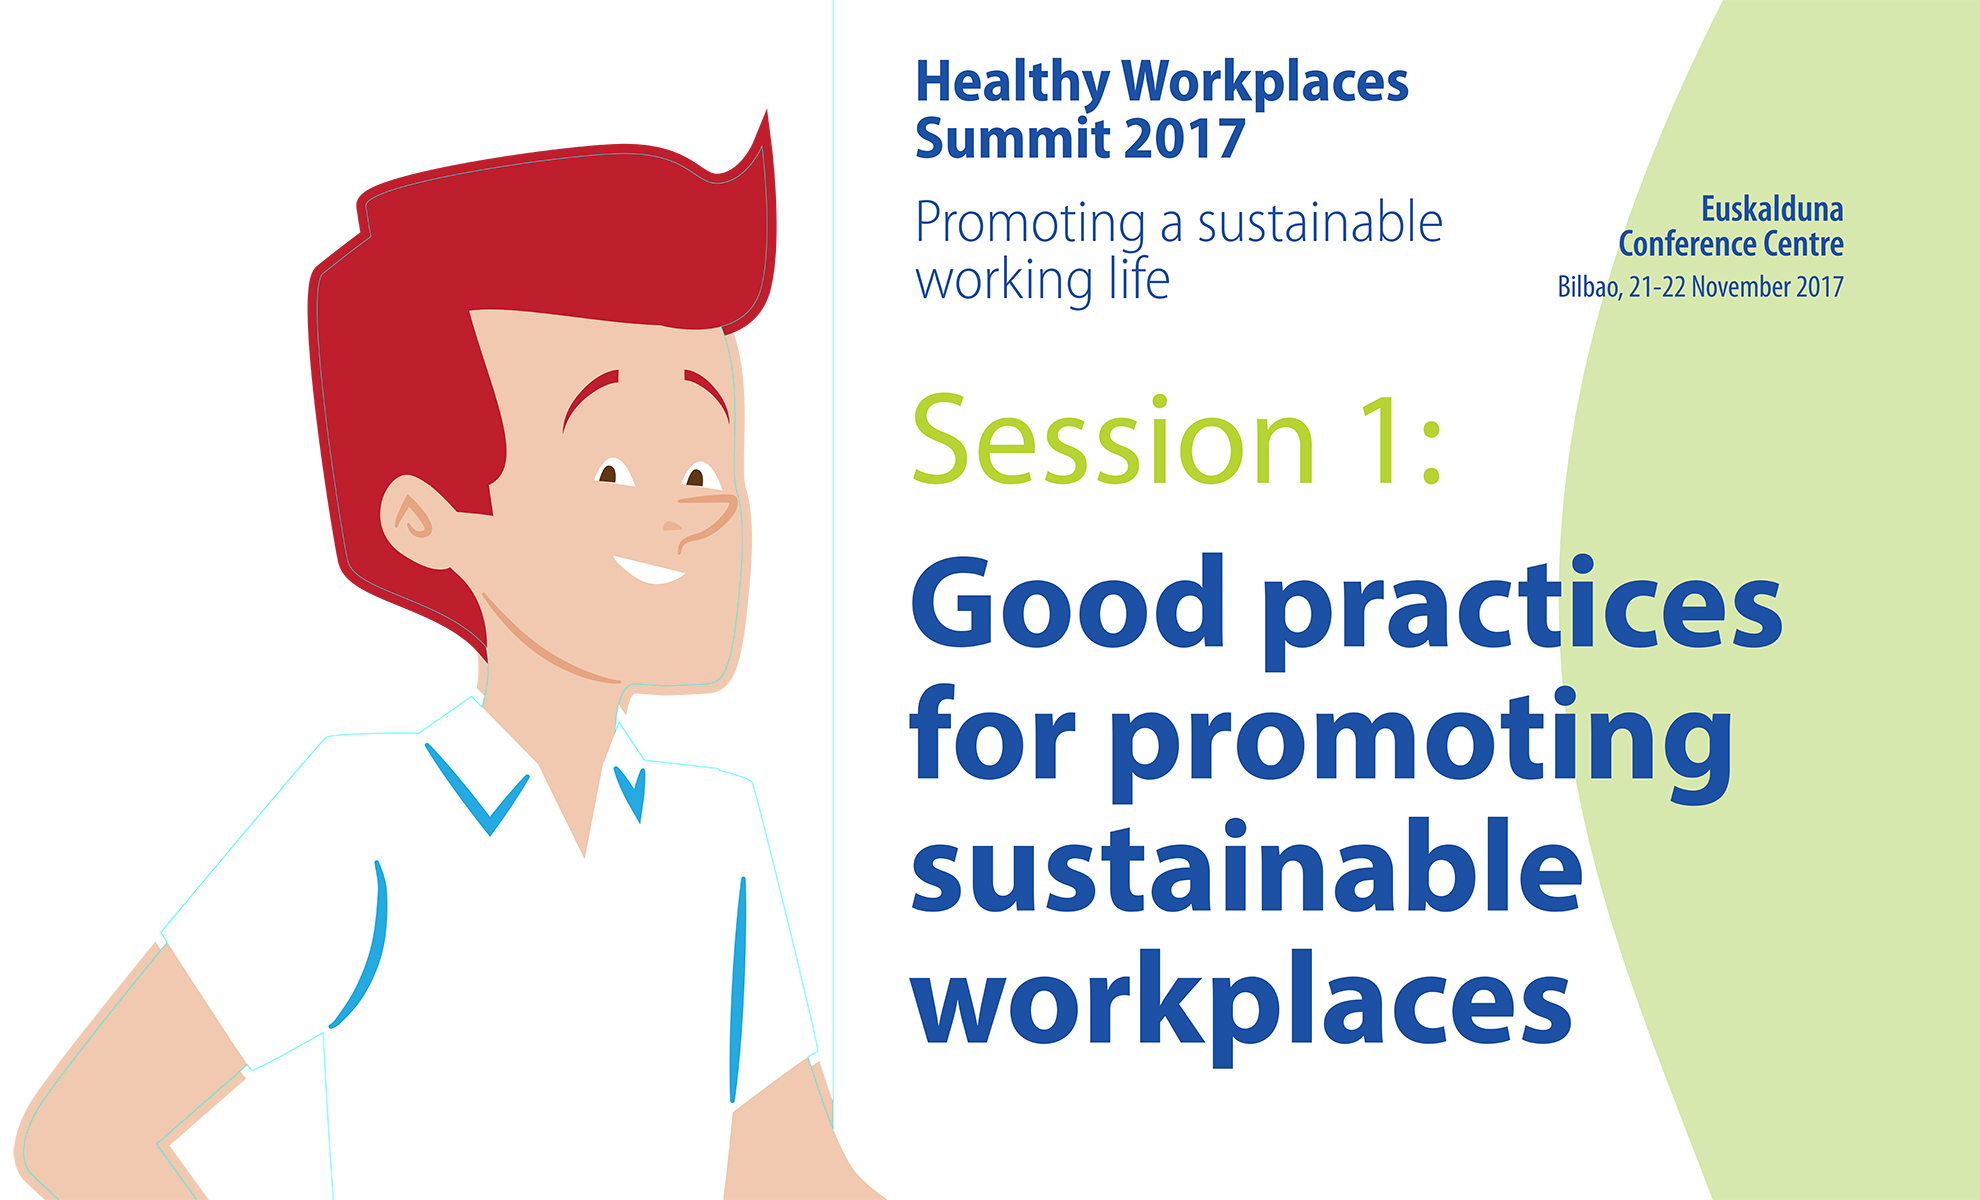 Parallel session 1 - Good practices for promoting sustainable workplaces